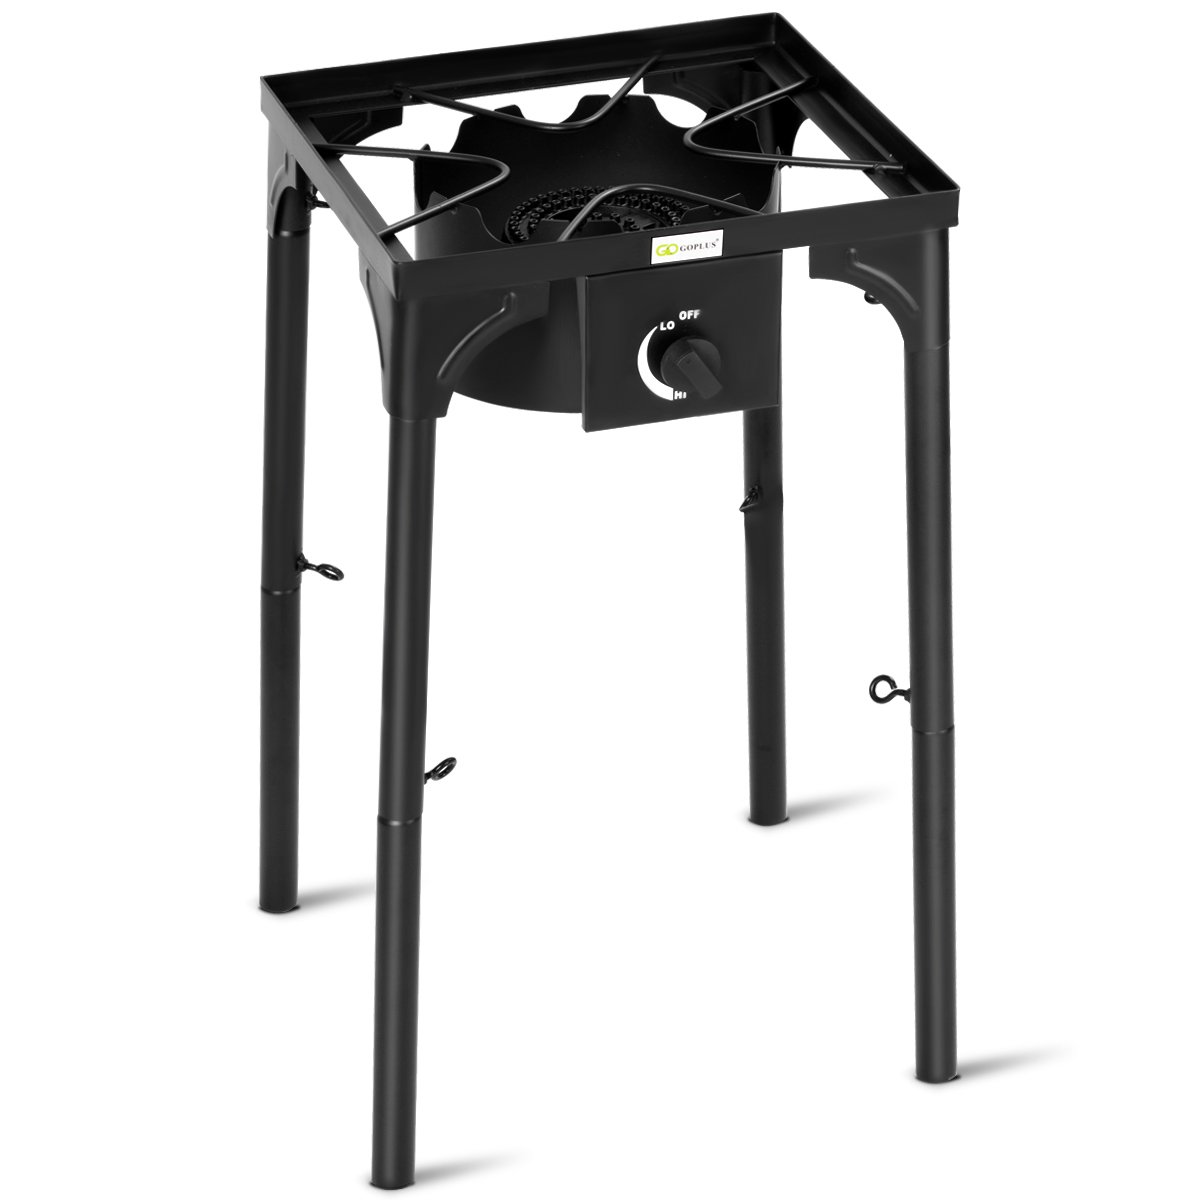 GYMAX Outdoor Stove, Single Burner High Pressure Propane Gas Camp Stove with Detachable Legs, Perfect for Camping Patio, 100,000-BTU